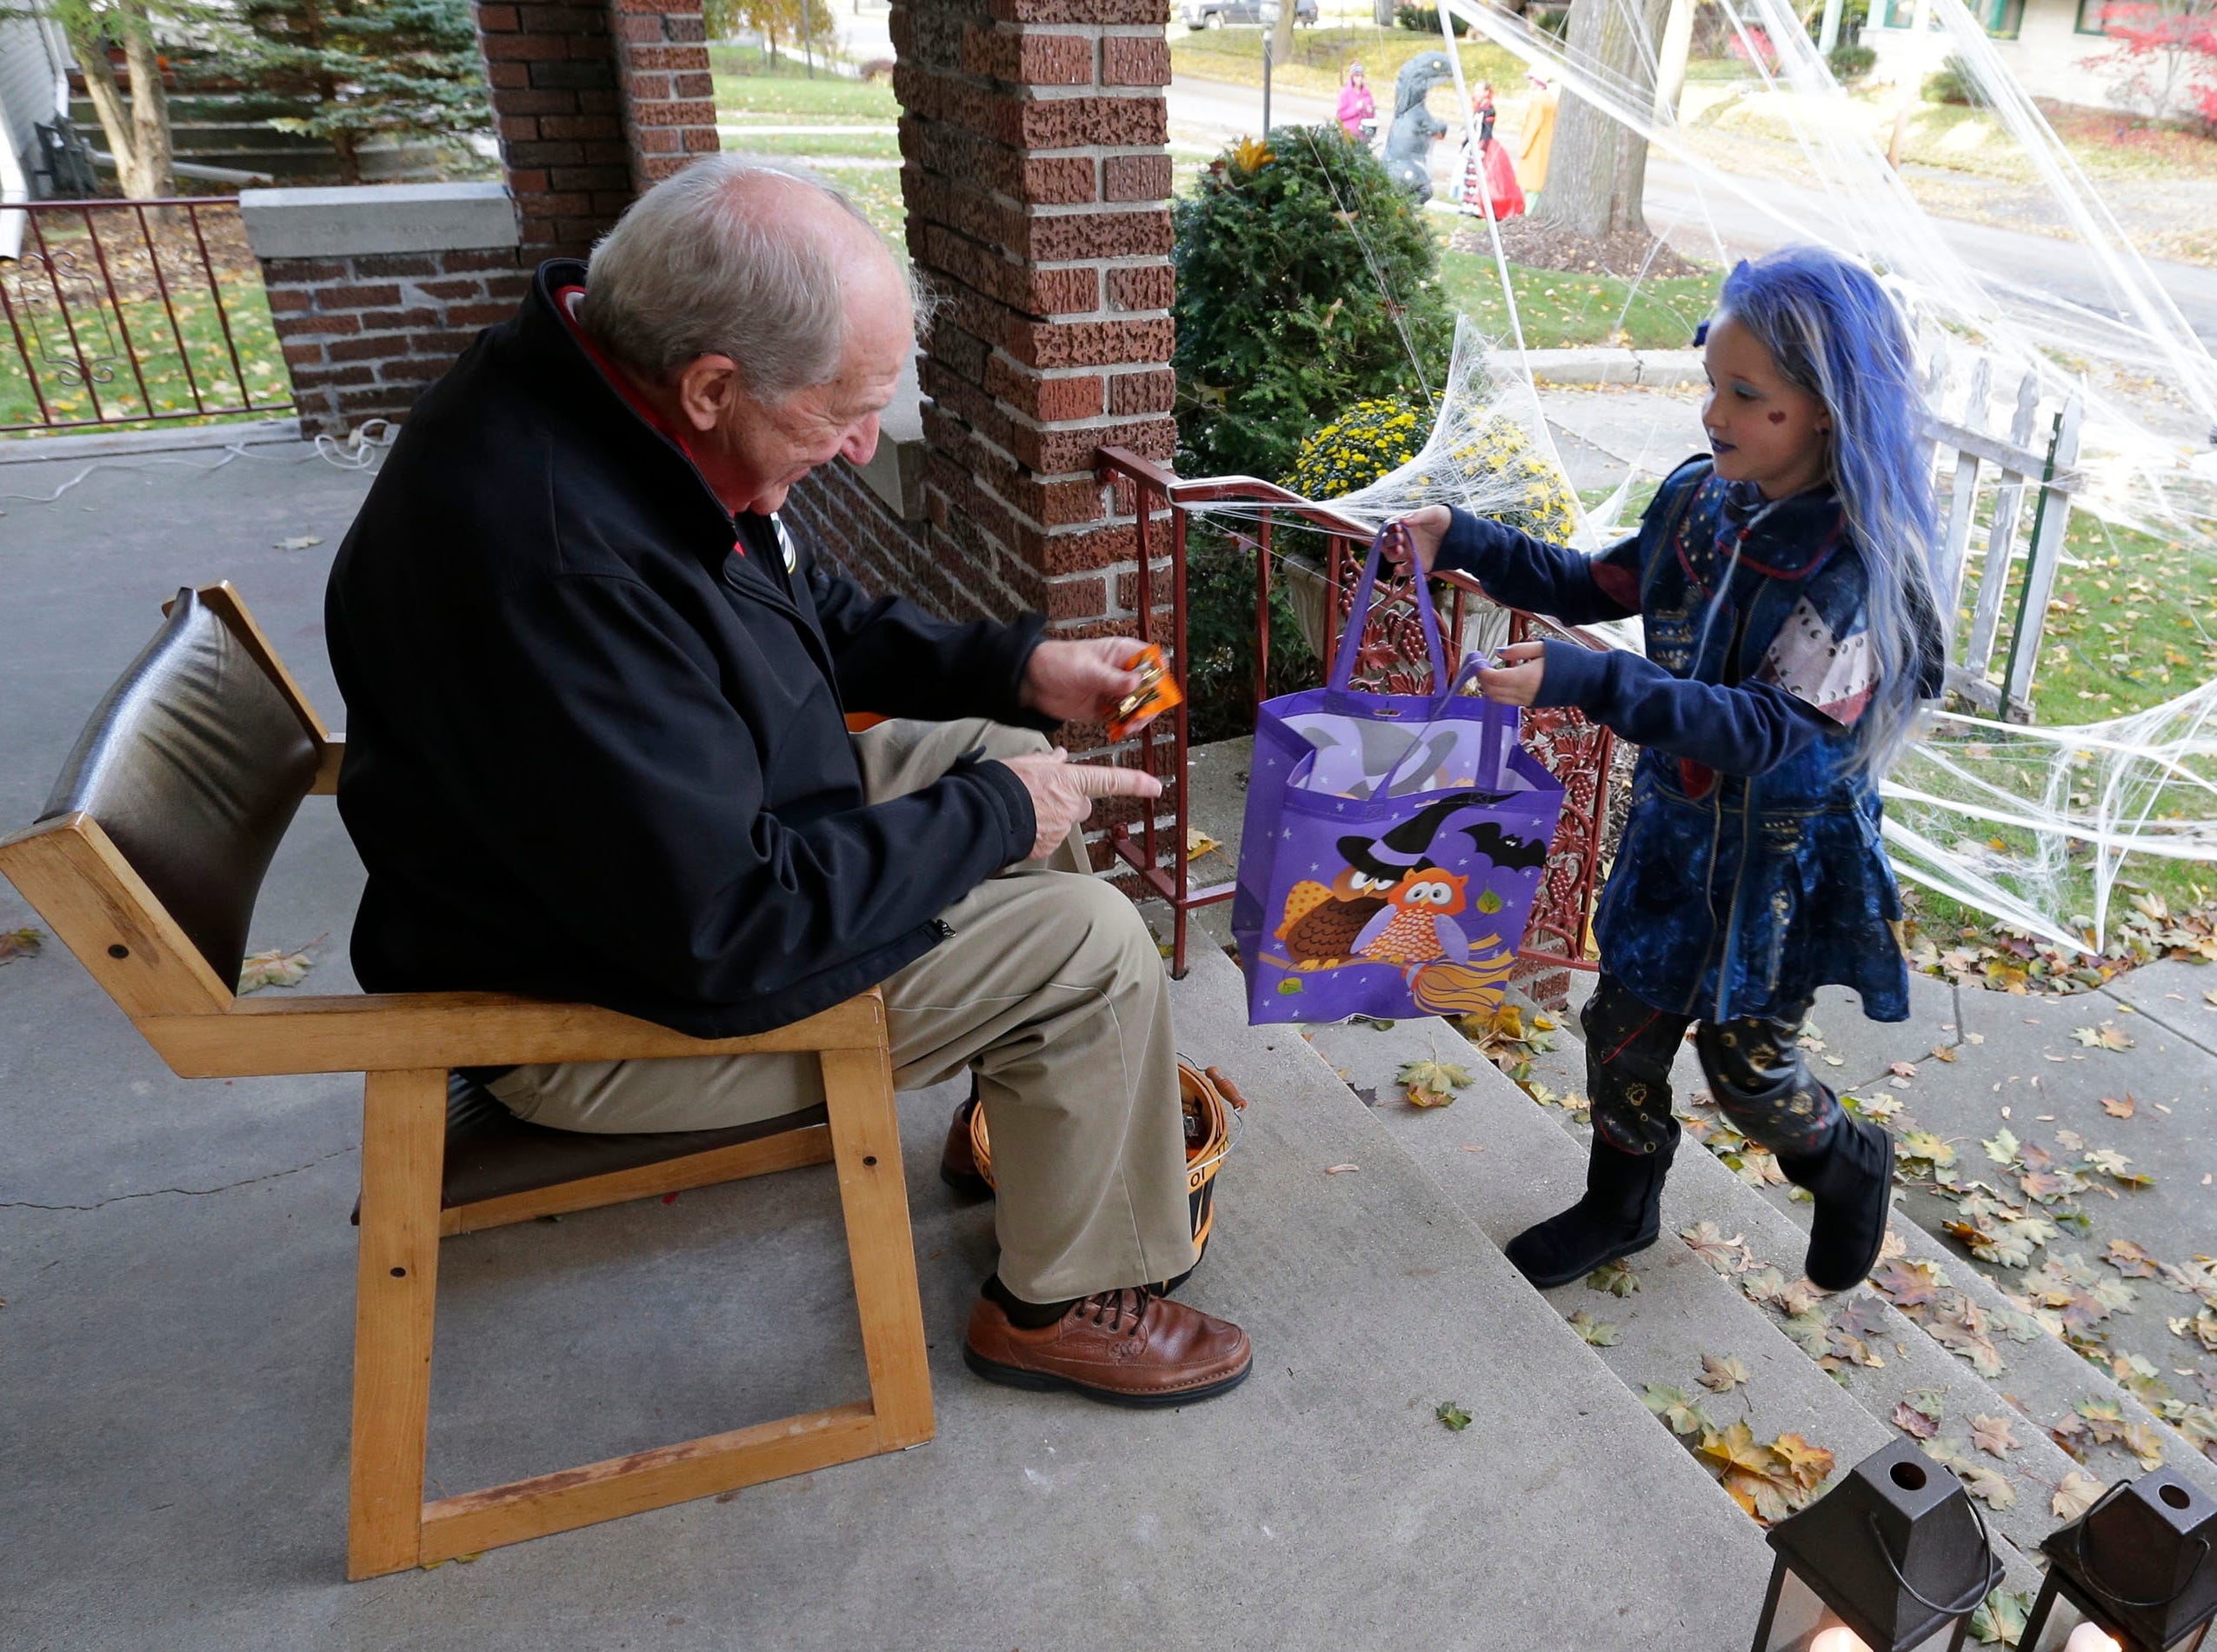 Ken Leibham hands out candy during Trick or Treat, Wednesday, October 31, 2018, in Sheboygan, Wis.